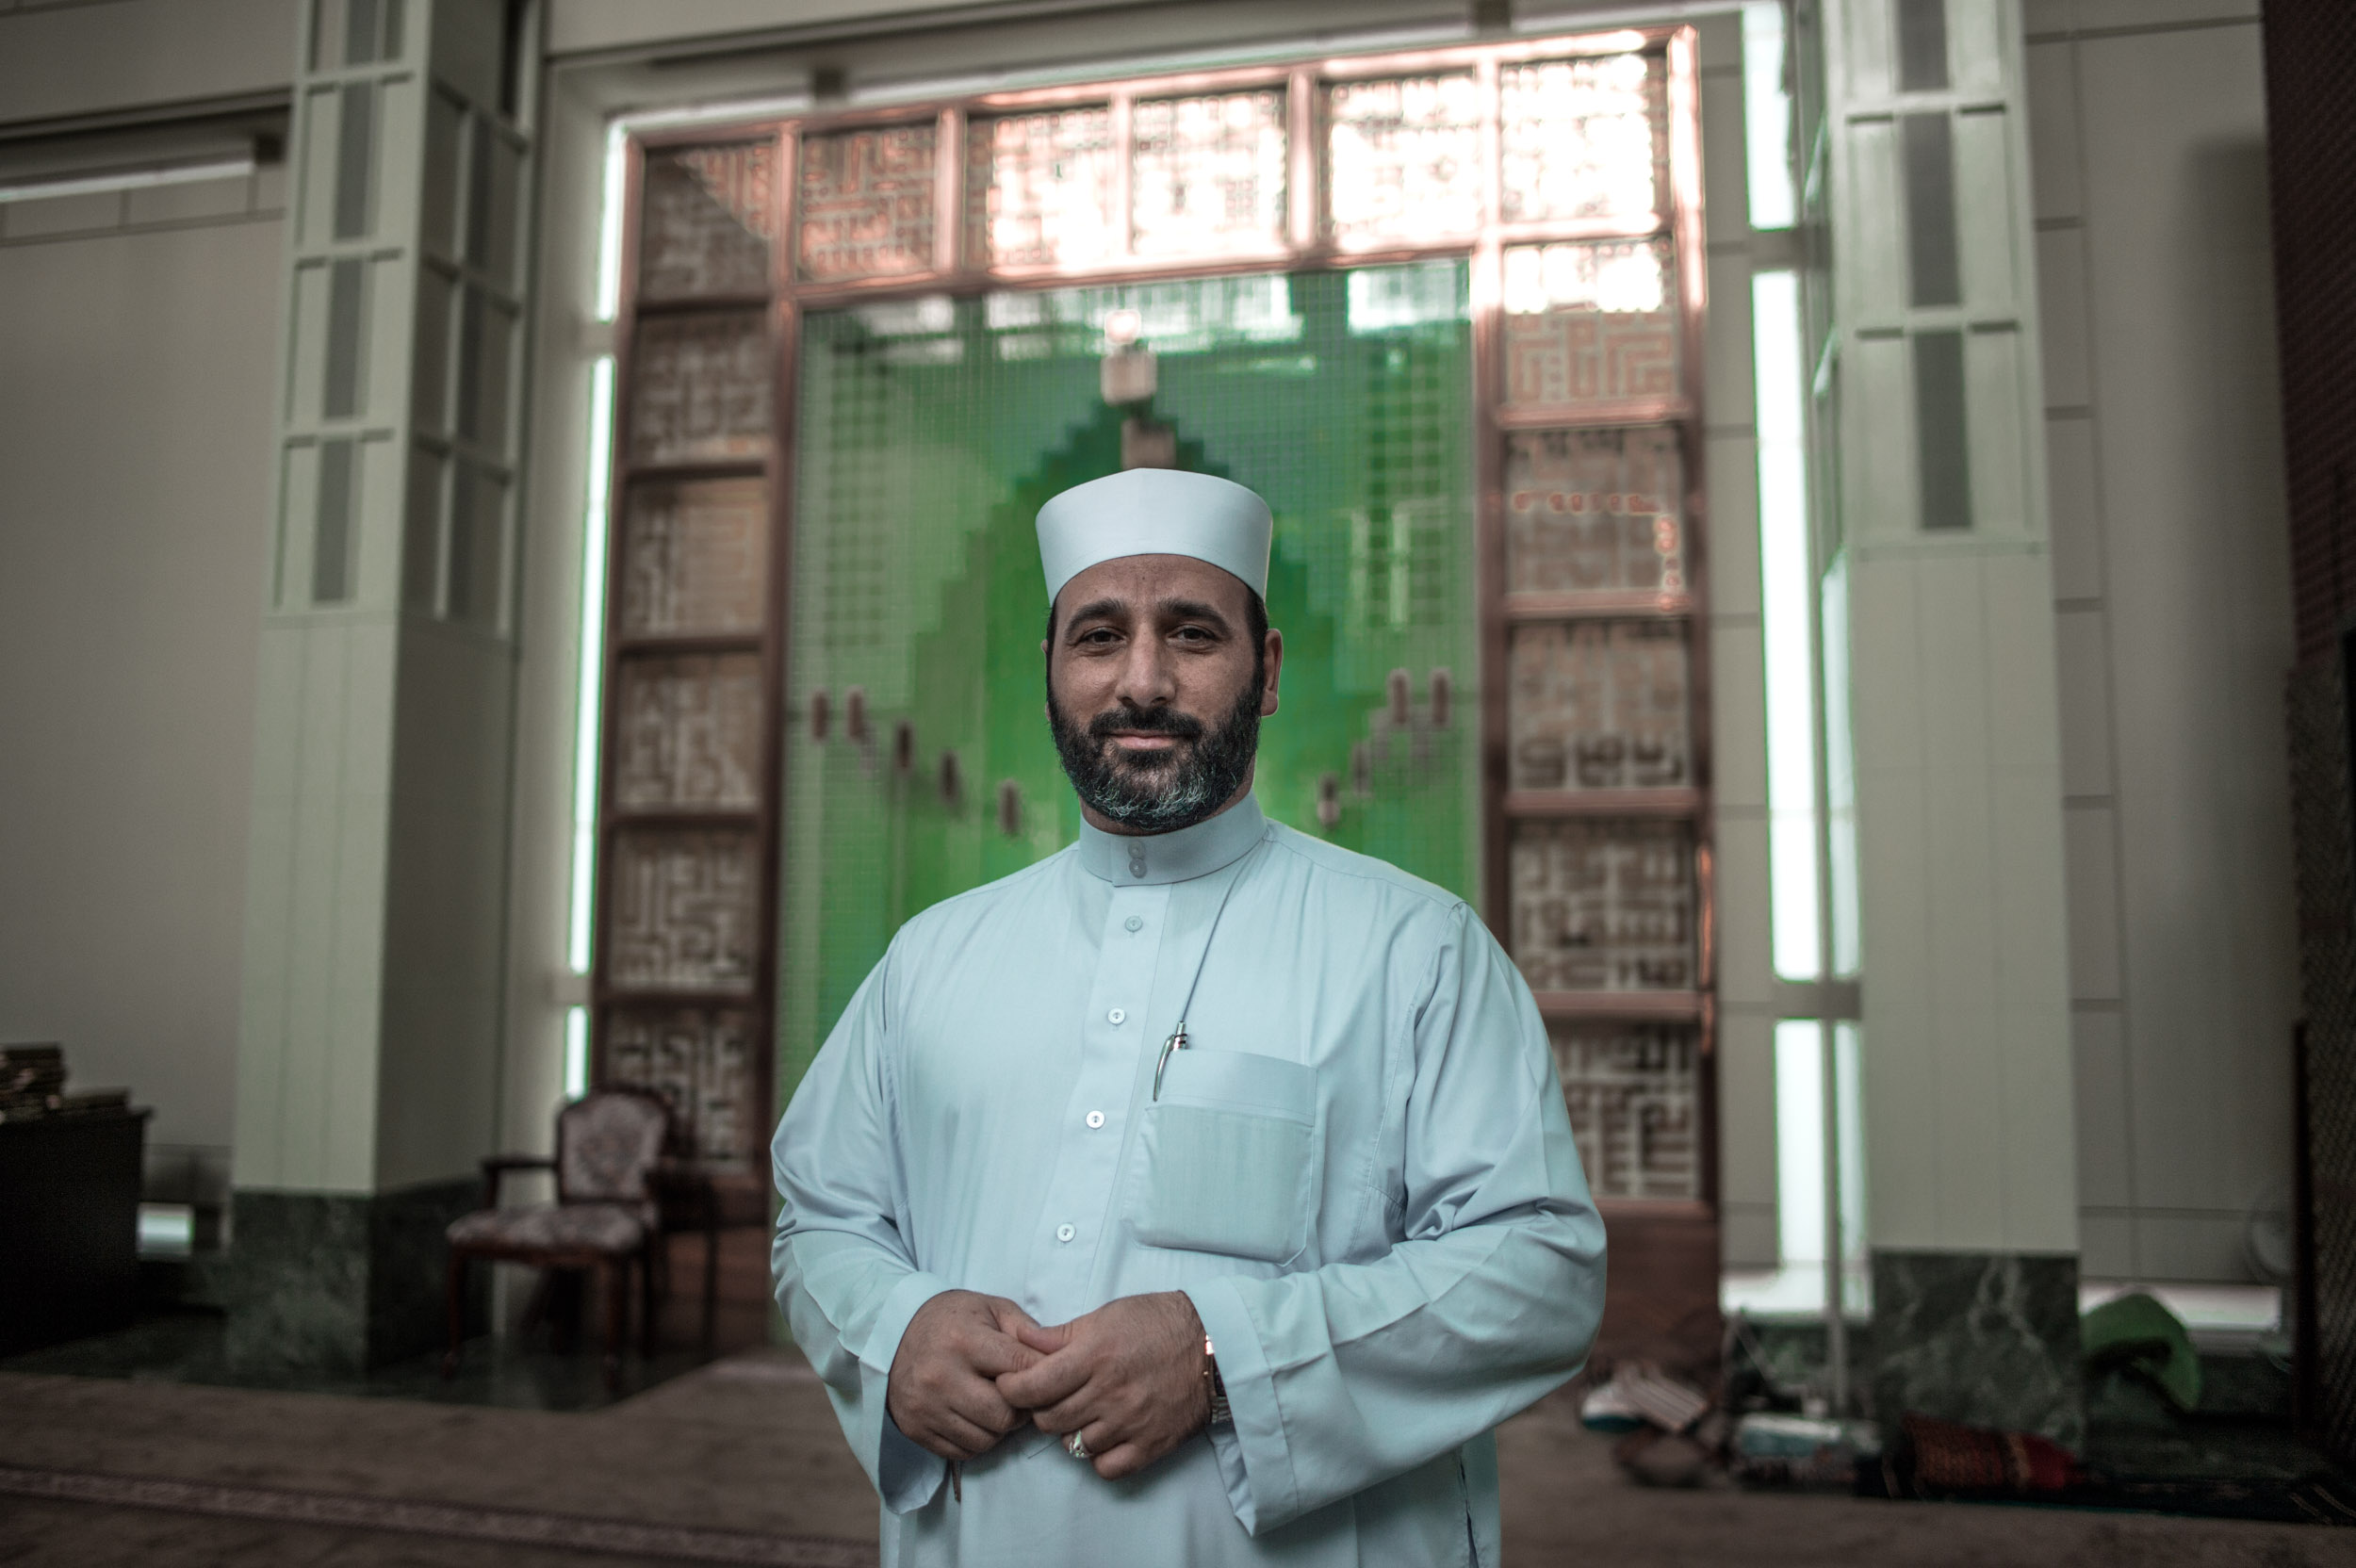 Sheik Waleed Elbaktrawish , the Imam of the biggest Mosque in Manhattan - the Islamic Cultural Center on 92nd Street.